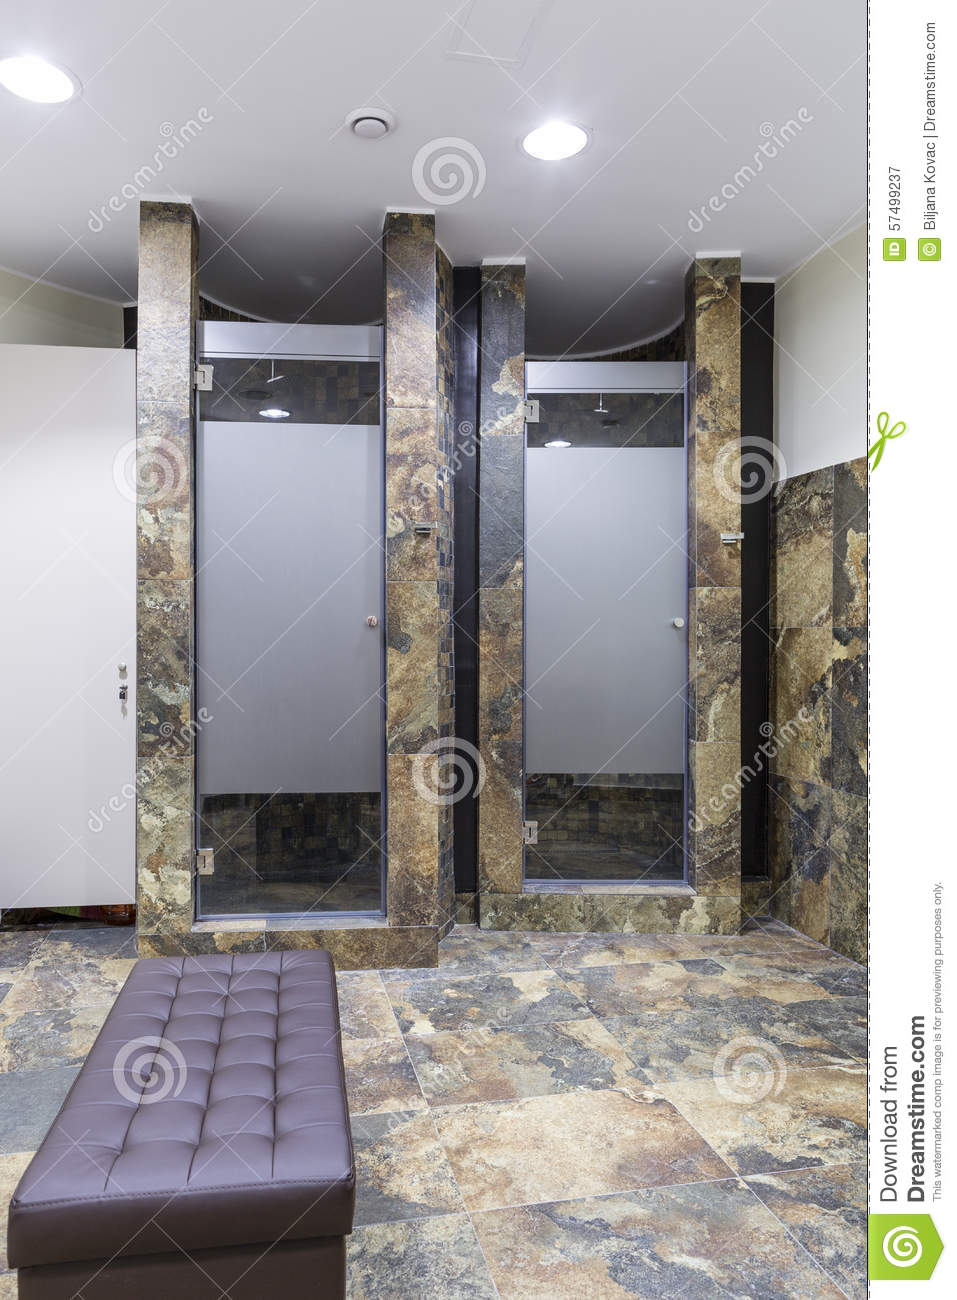 Gym and wellness toilet stock image of tiles